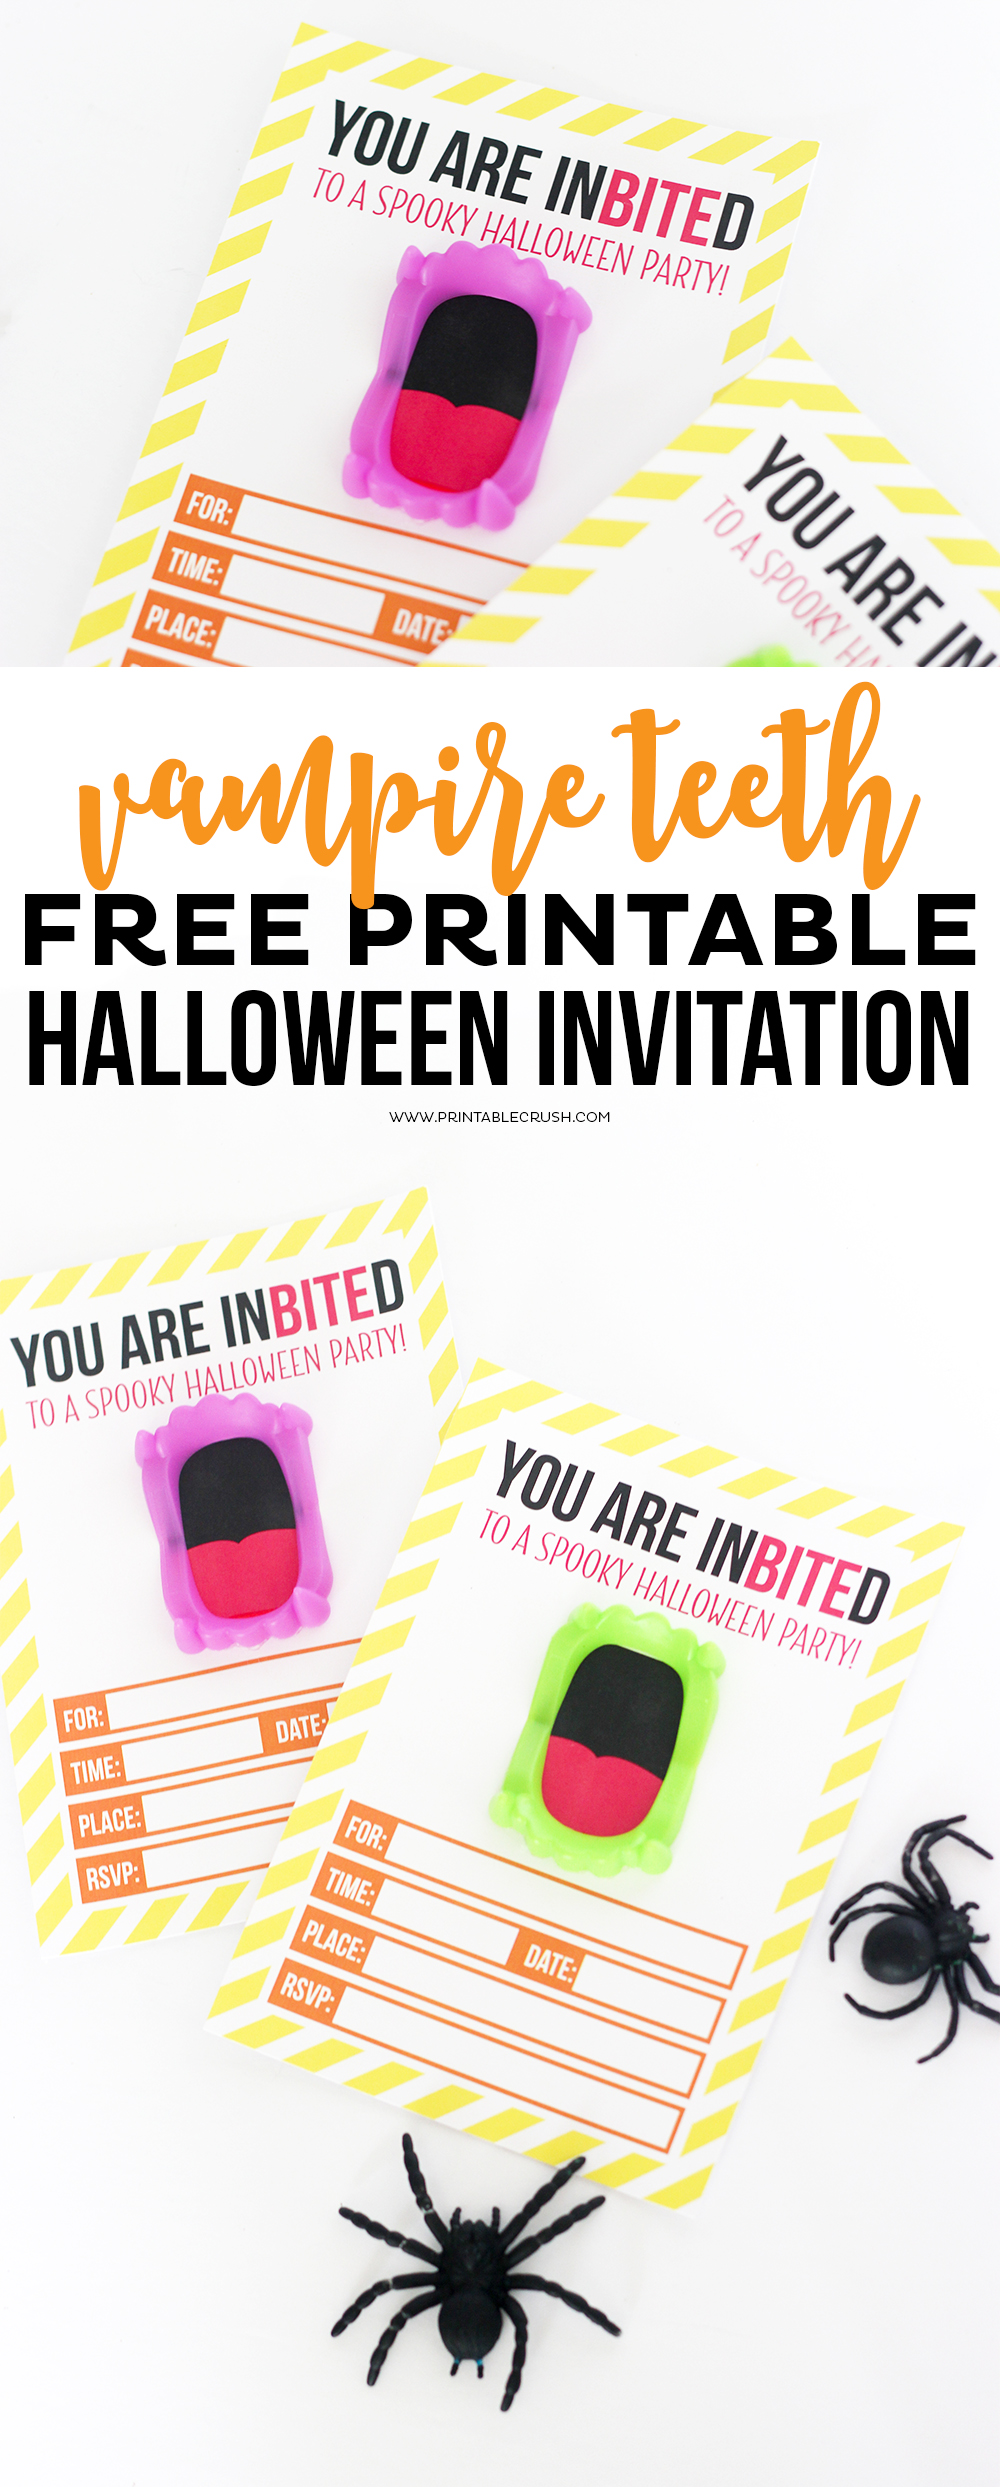 Free Printable Vampire Teeth Halloween Invitation | Halloween Party Ideas